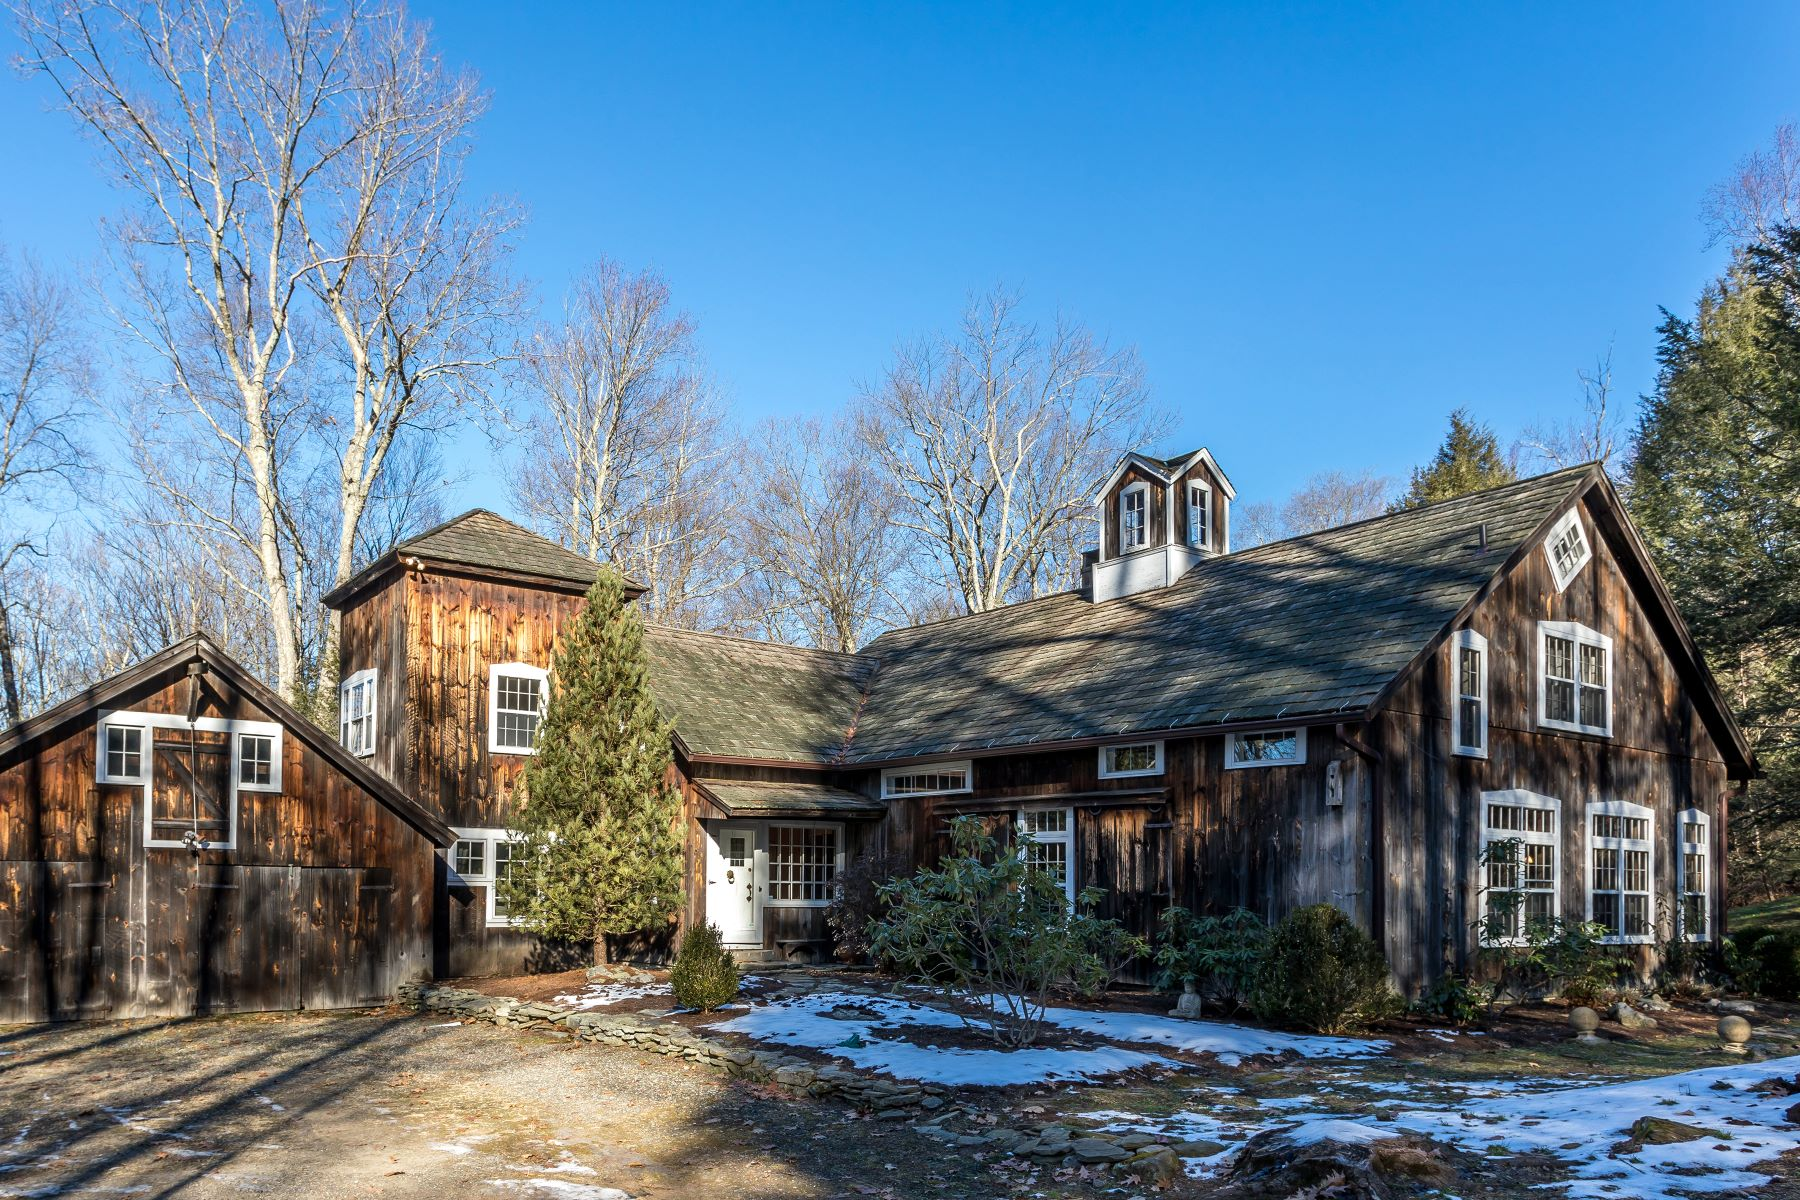 Single Family Home for Sale at A unique and special barn-style home 80 Chalybes Road West, Roxbury, Connecticut, 06783 United States